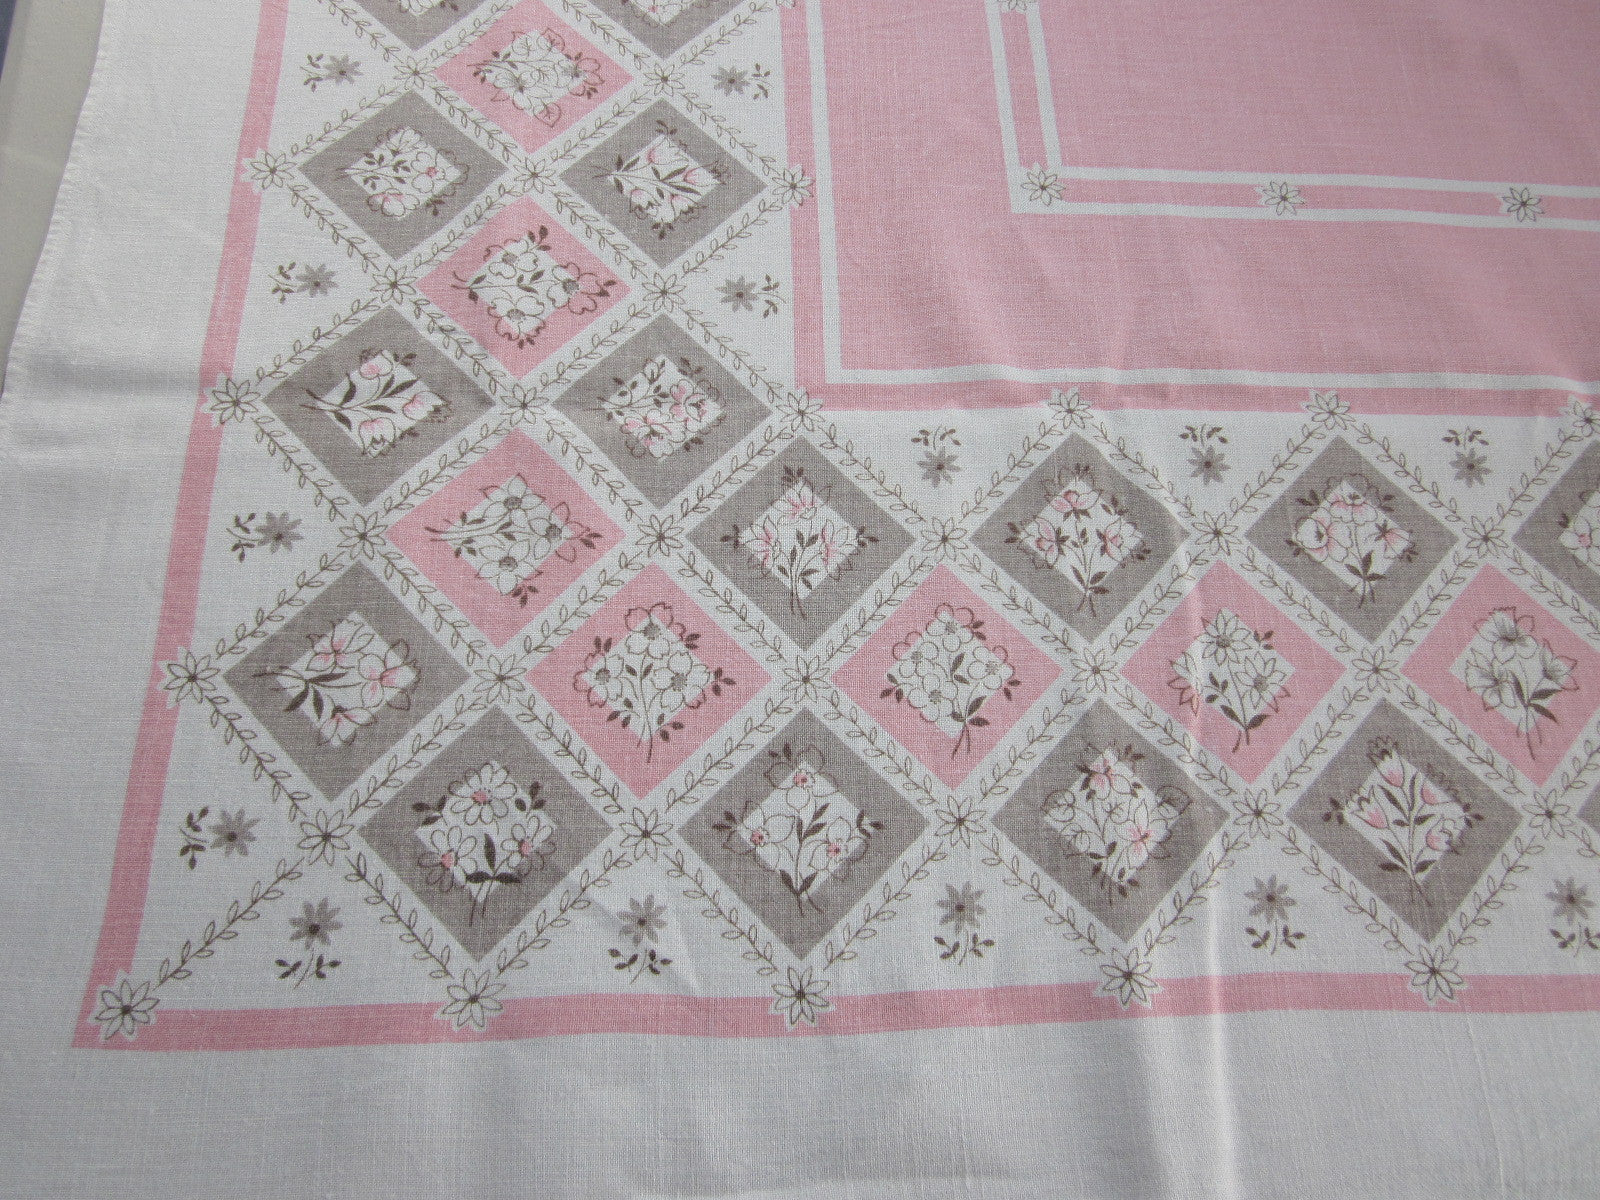 Pink Tan Diamonds Linen Floral Vintage Printed Tablecloth (65 X 49)